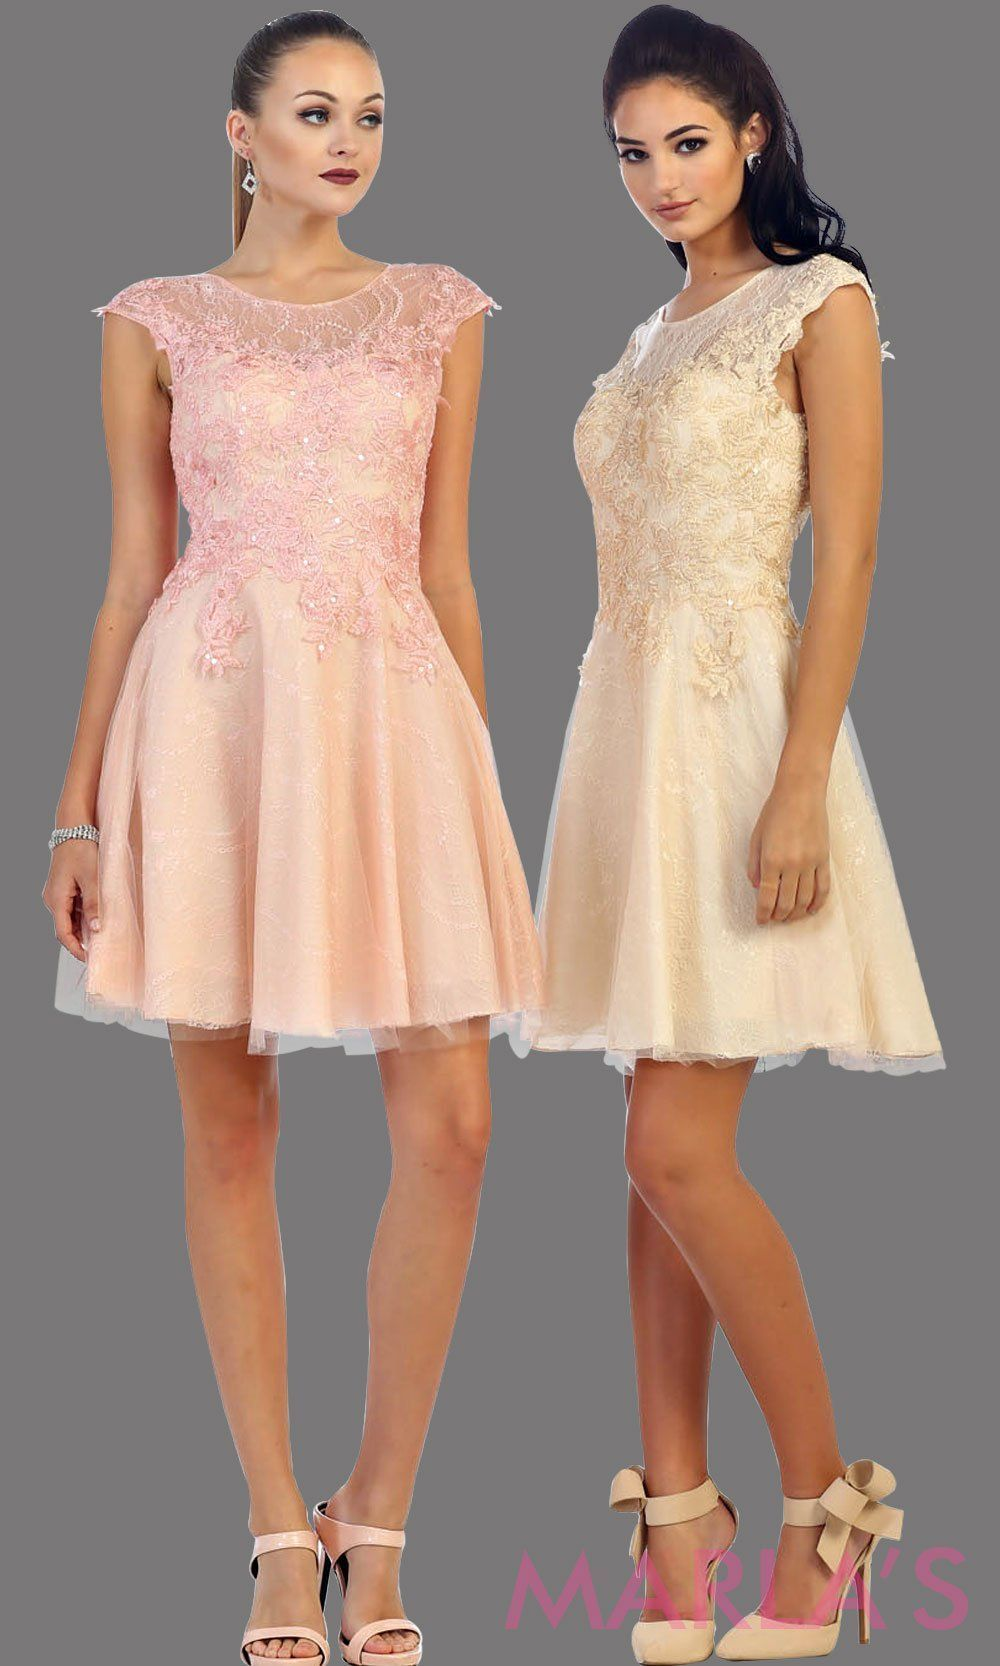 2a90200a95f0 High neck short champagne puffy dress with lace bodice. This light beige  short grade 8 graduation dress has a low v back. This is perfect for  homecoming, ...